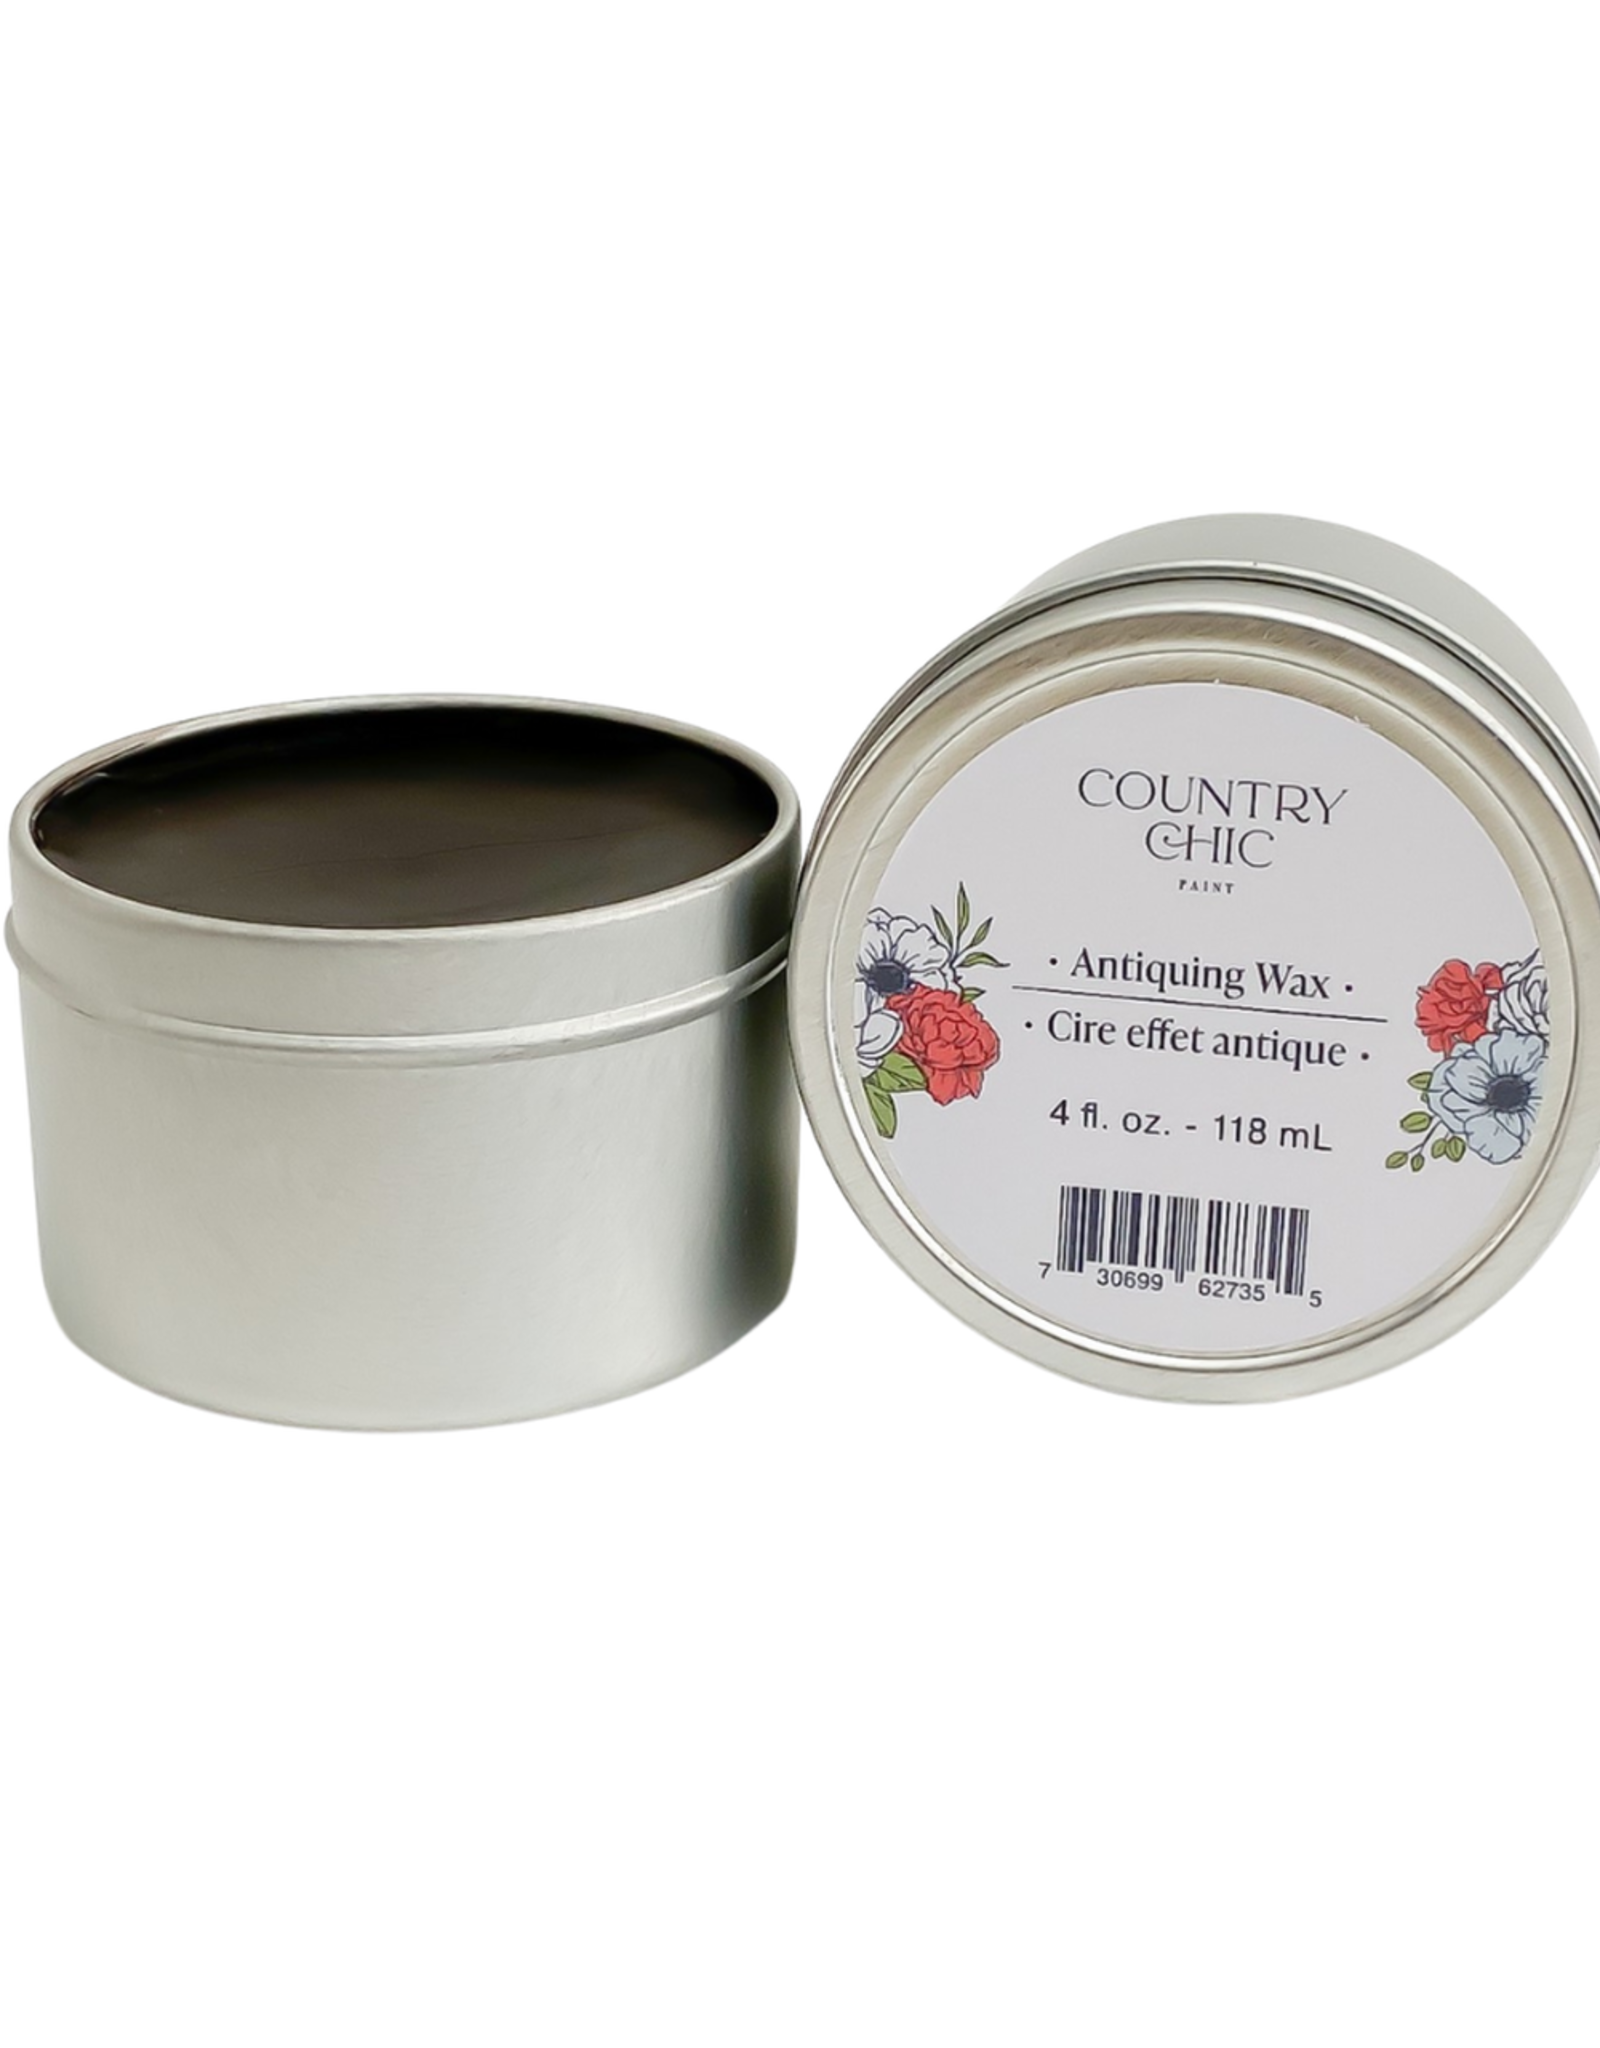 Country Chic Copy of Country Chic Antique Wax 2oz